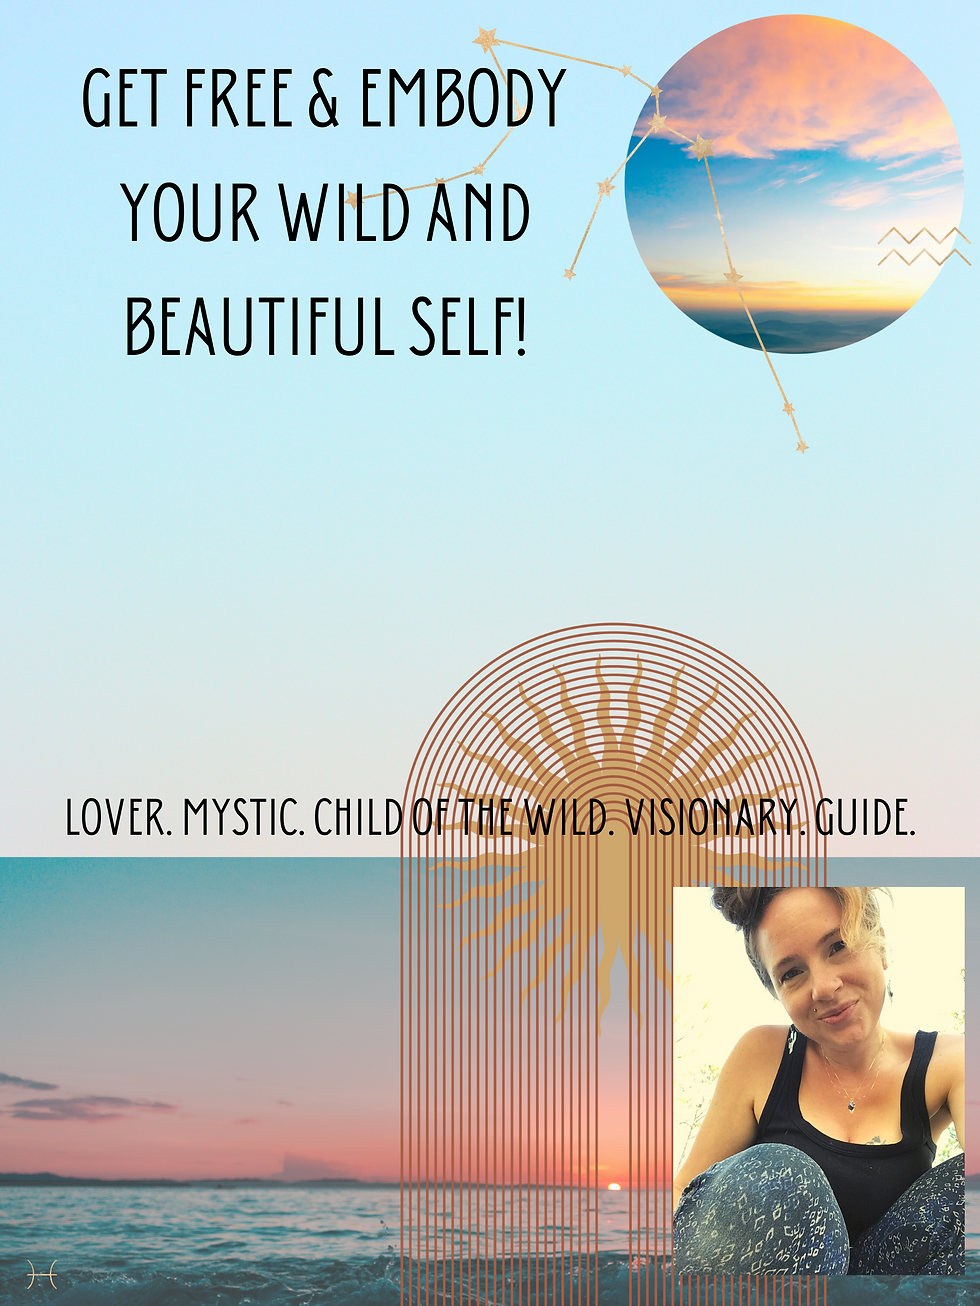 lover. mystic. child of the wild. visionary. guide. (1).png